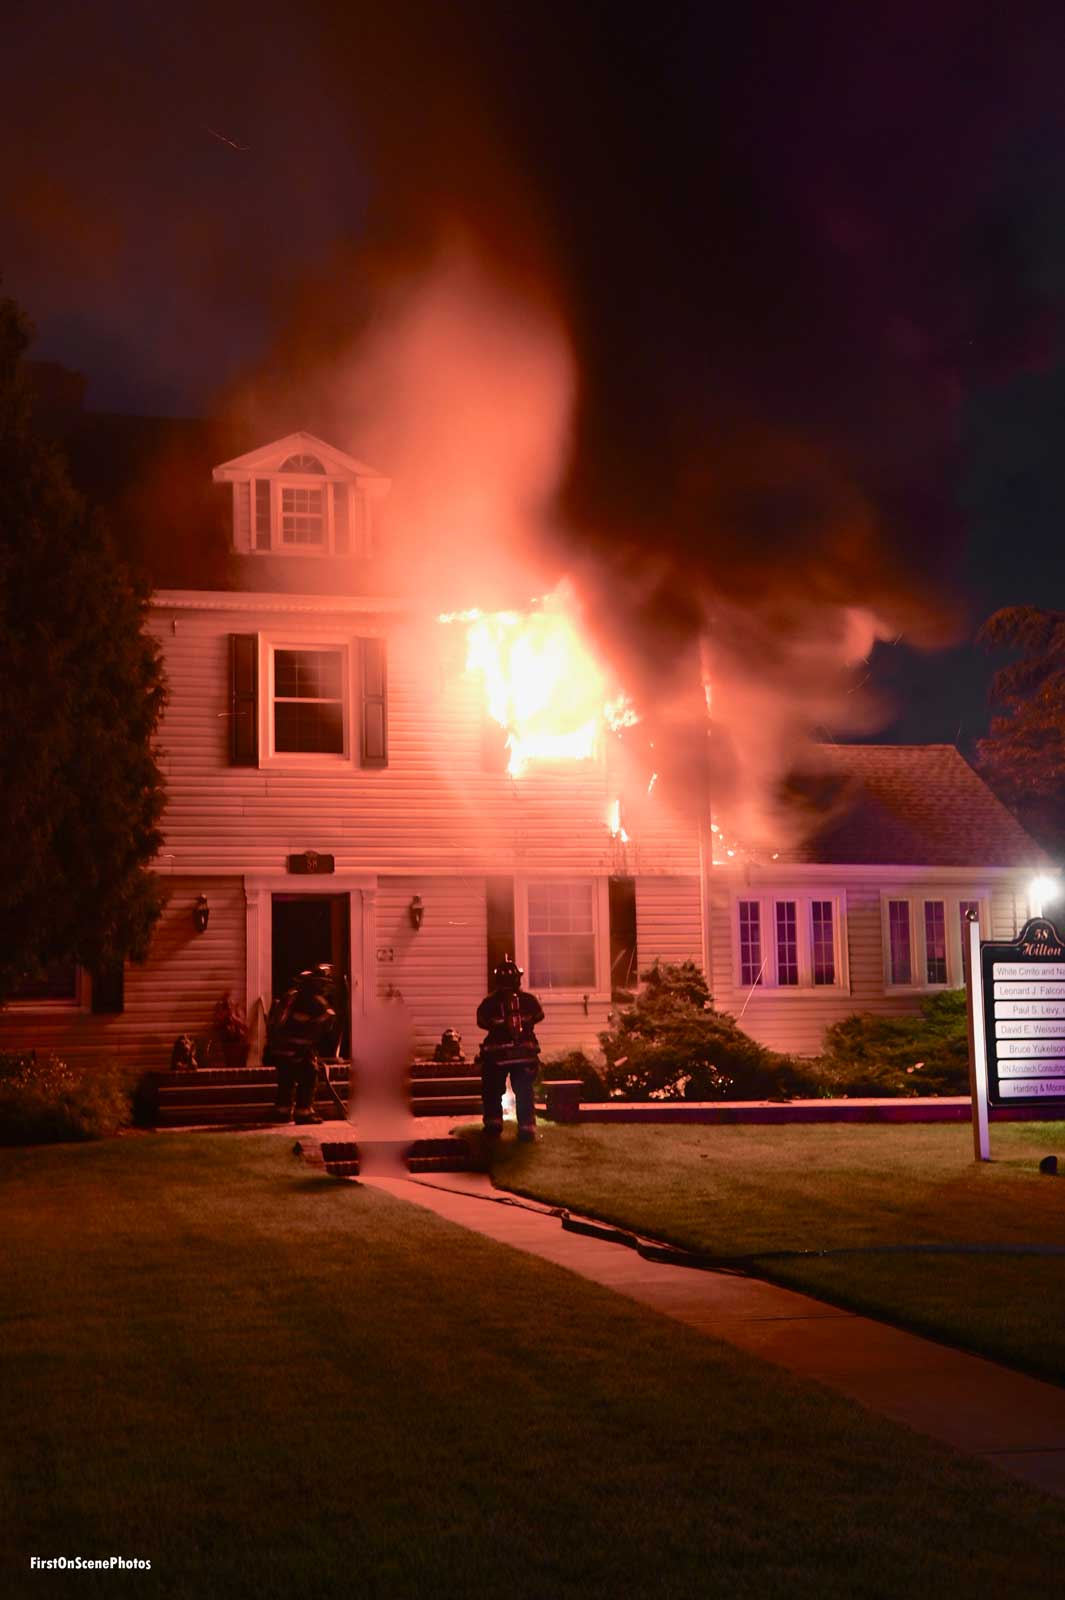 Flames shoot from a home in the village of Hempstead, New York